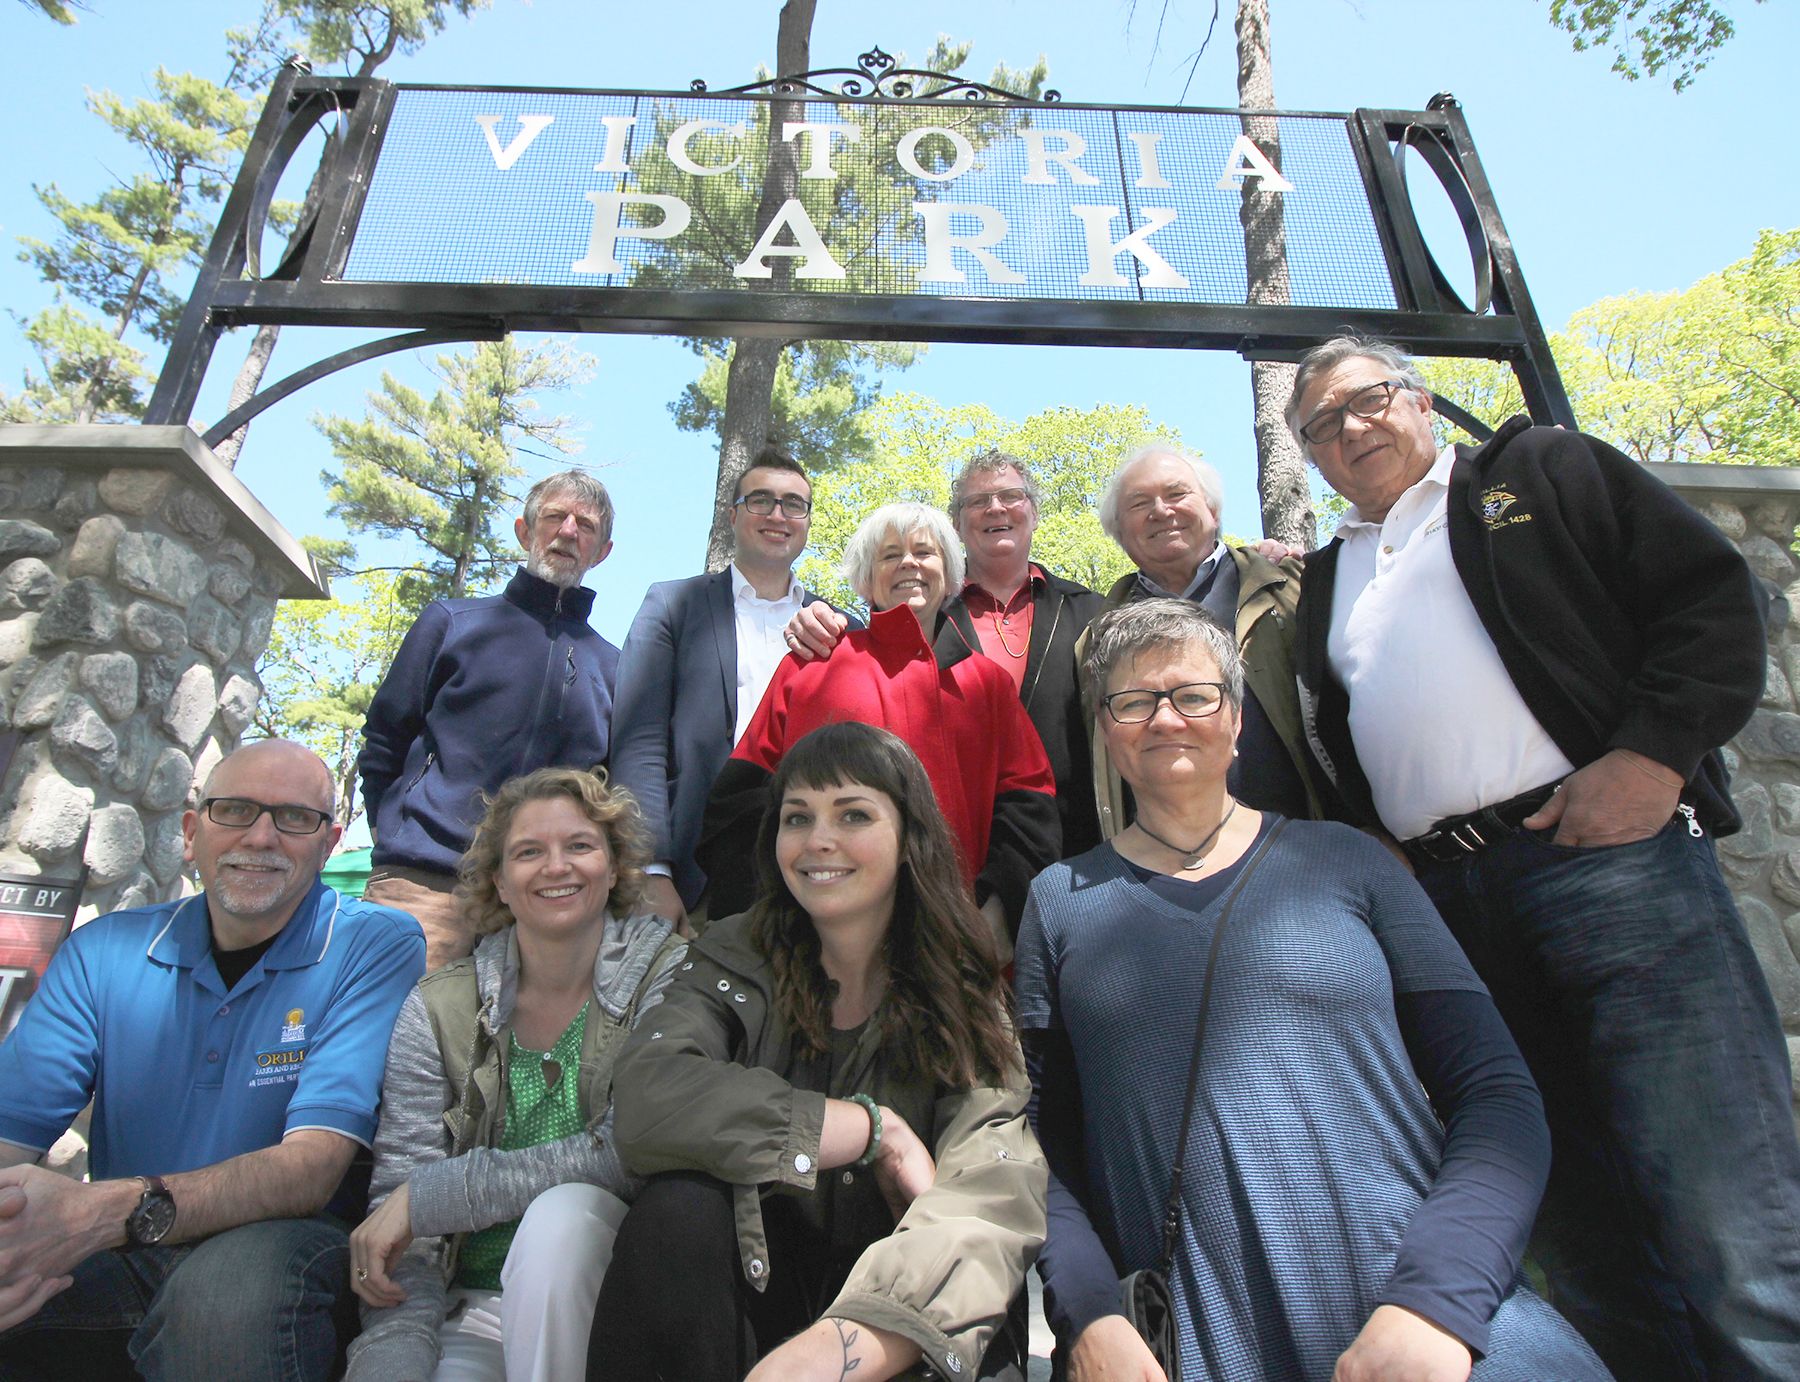 From top left – Coun. Tim Lauer, Coun. Mason Ainsworth, Coun. Pat Hehn, Mayor Steve Clarke, Coun. Ted Emond, Coun. Ralph Cipolla, Ray Merkley, Jacqueline Soczka and Haleigh Fox from Parks, Recreation and Culture and Sylvie Browne, granddaughter of Elizabeth Wyn Wood, gather to celebrate the new feature entryway sign at Victoria Park during Art Park on May 20, 2017.